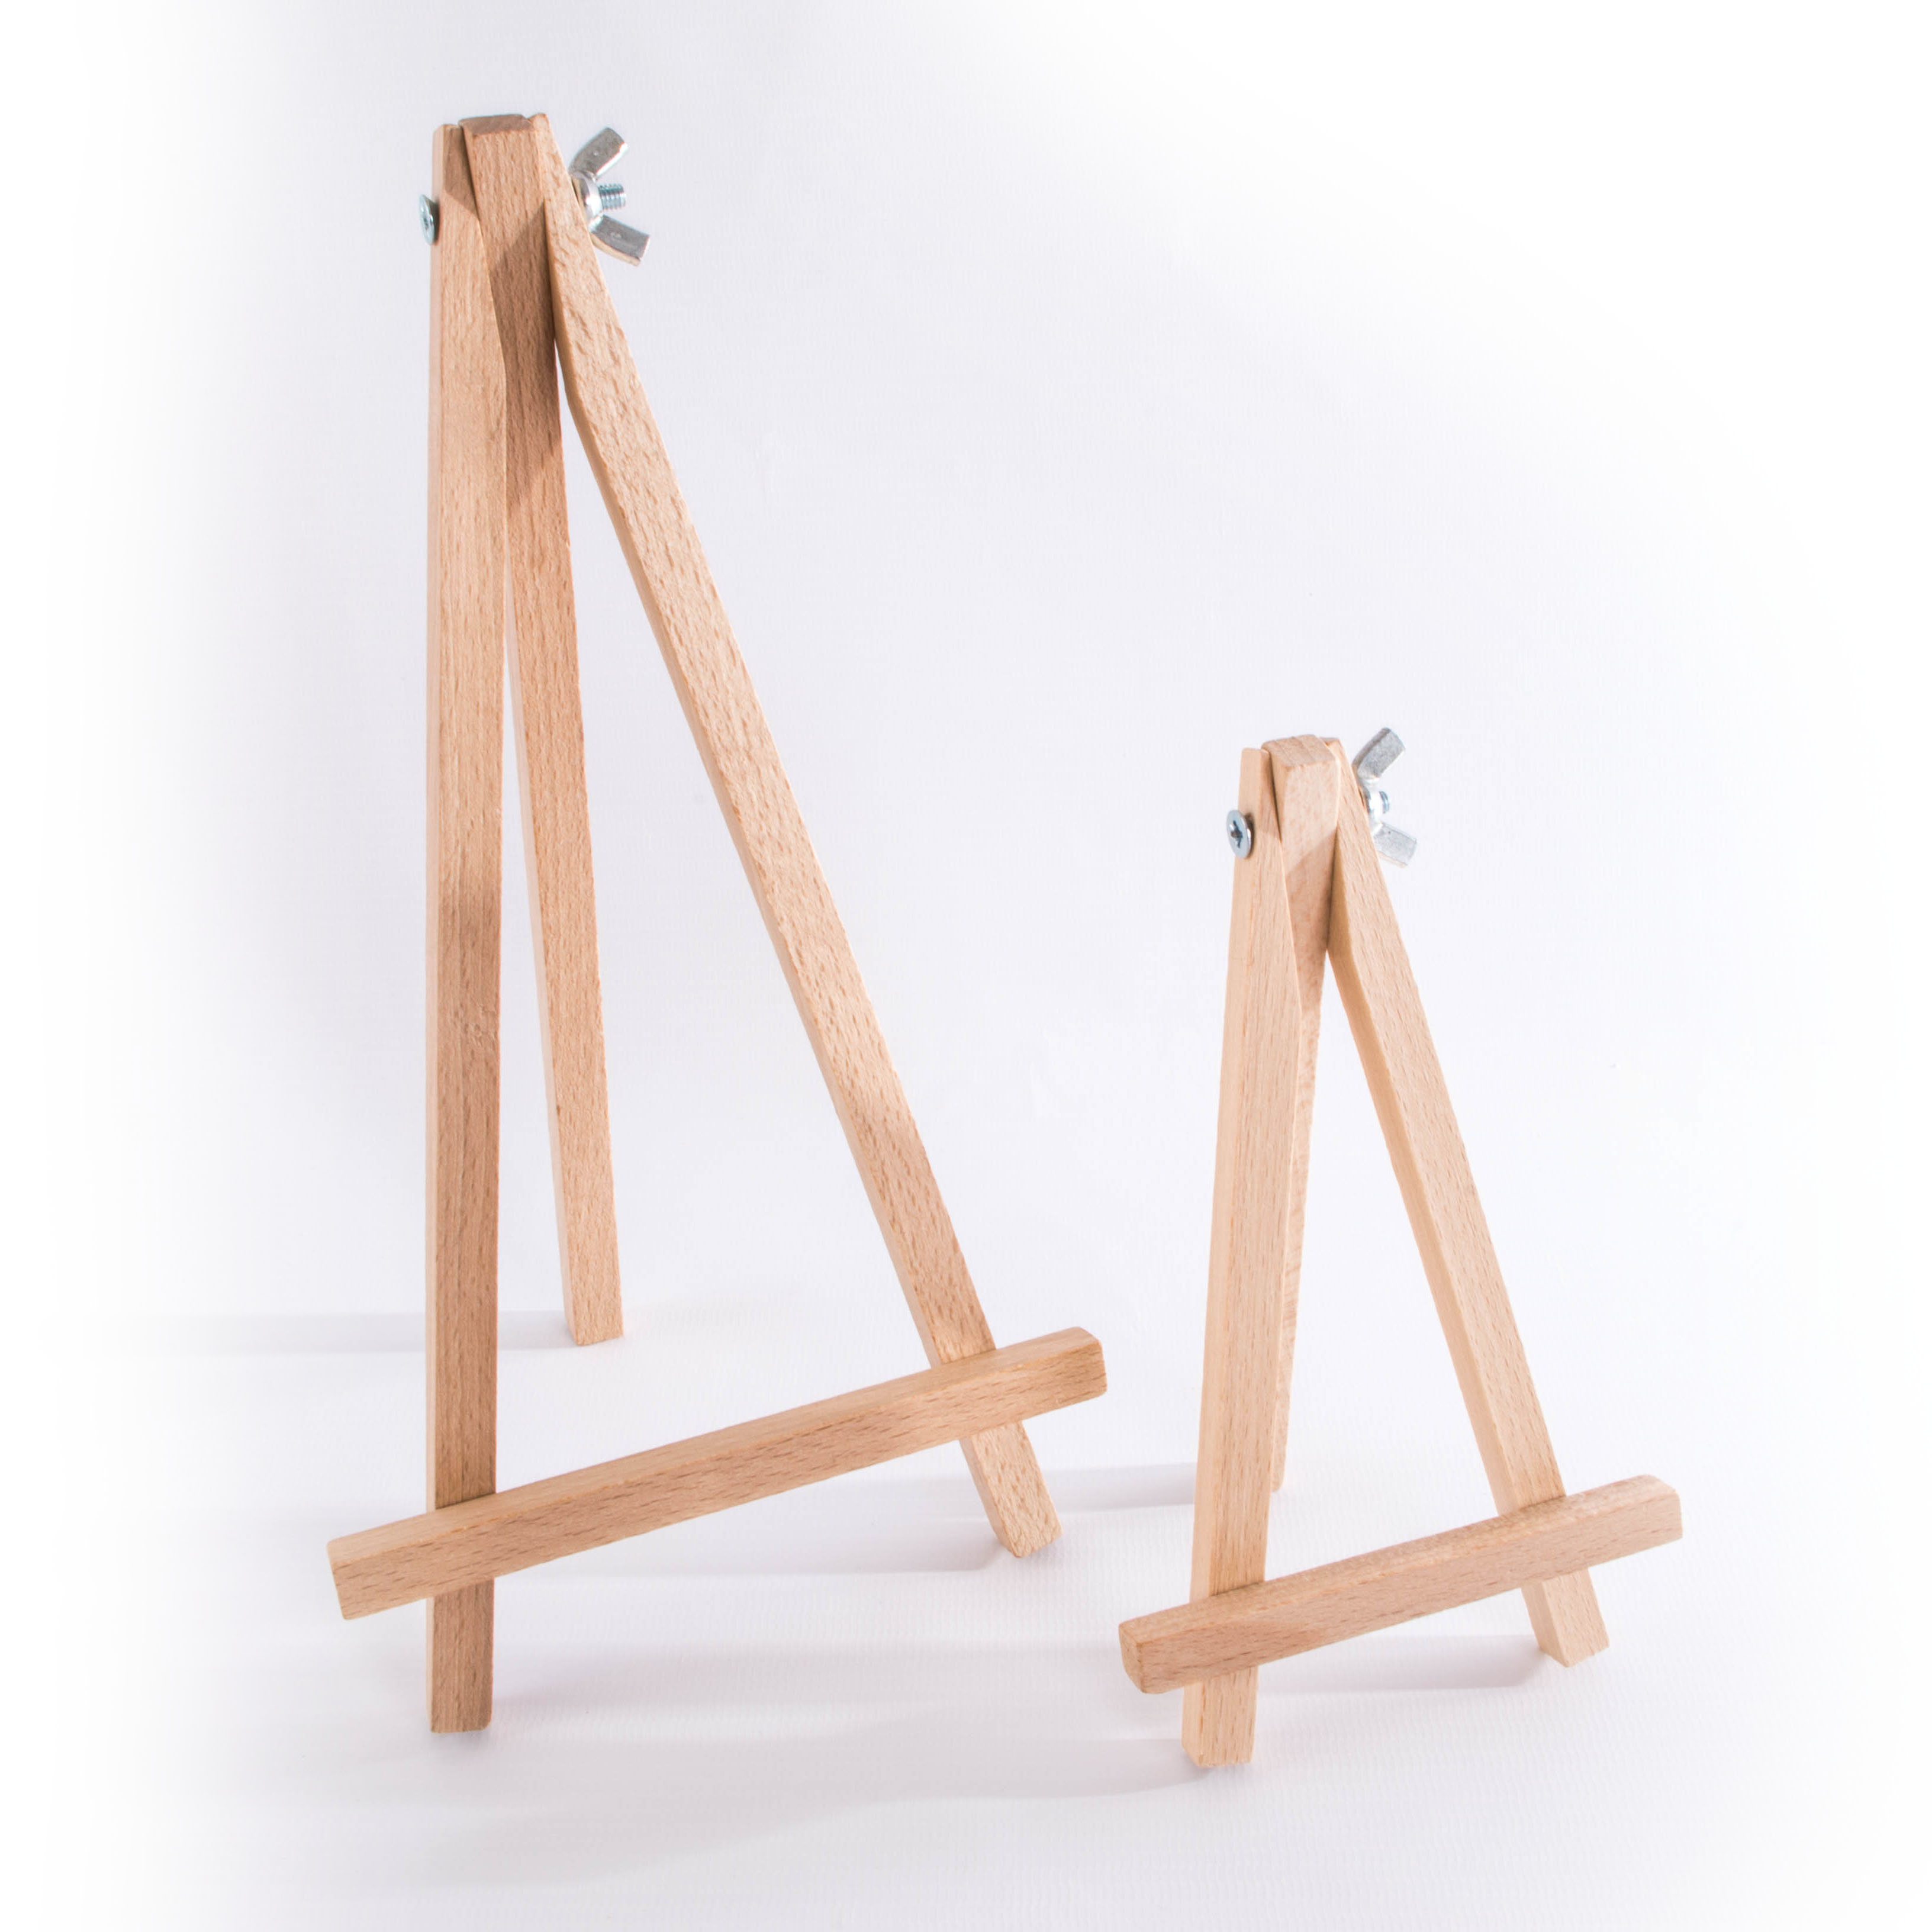 Details About Small Mini Wooden Easel Stand 15 Or 25cm Table Desktop Wedding Photo Display